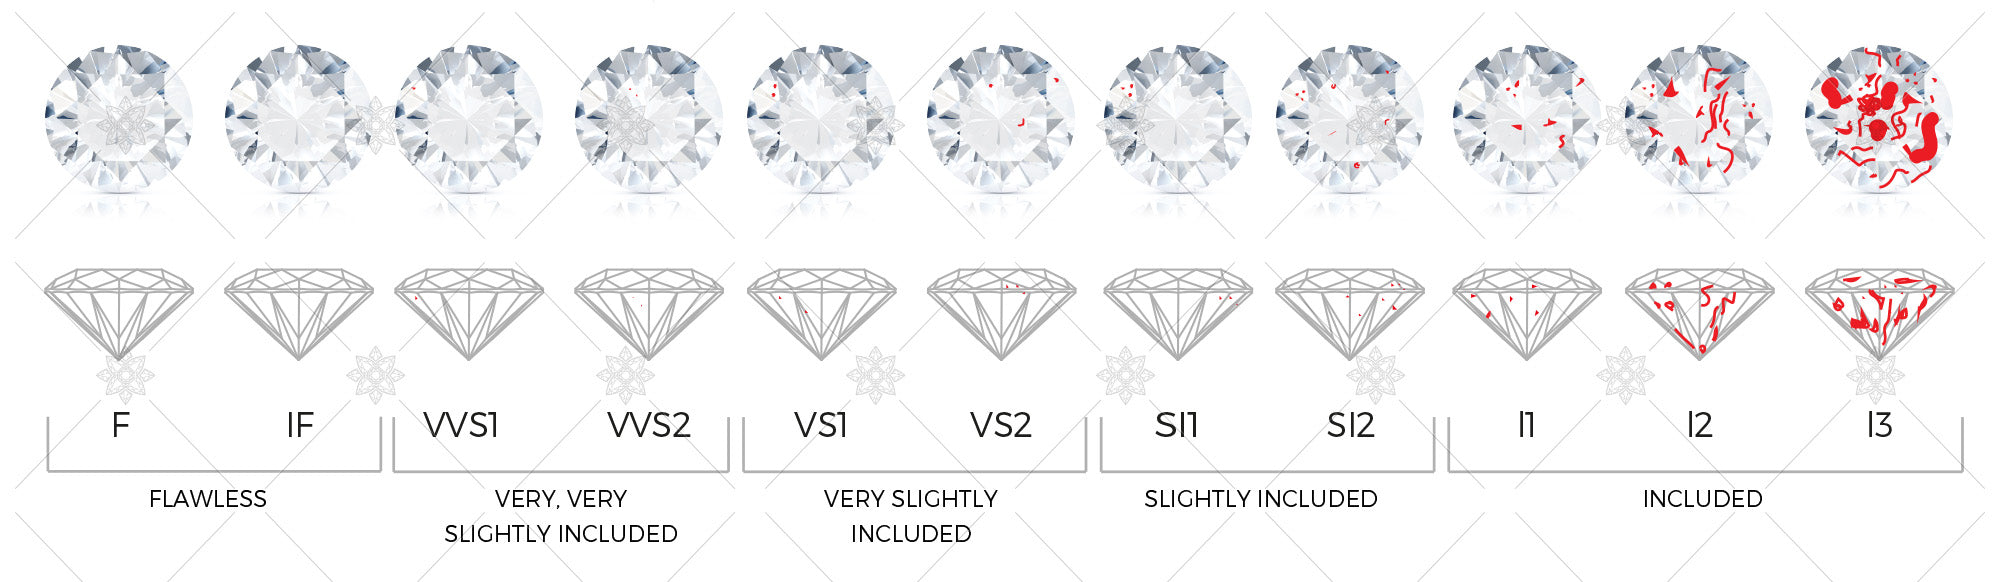 Diamond clarity full guide